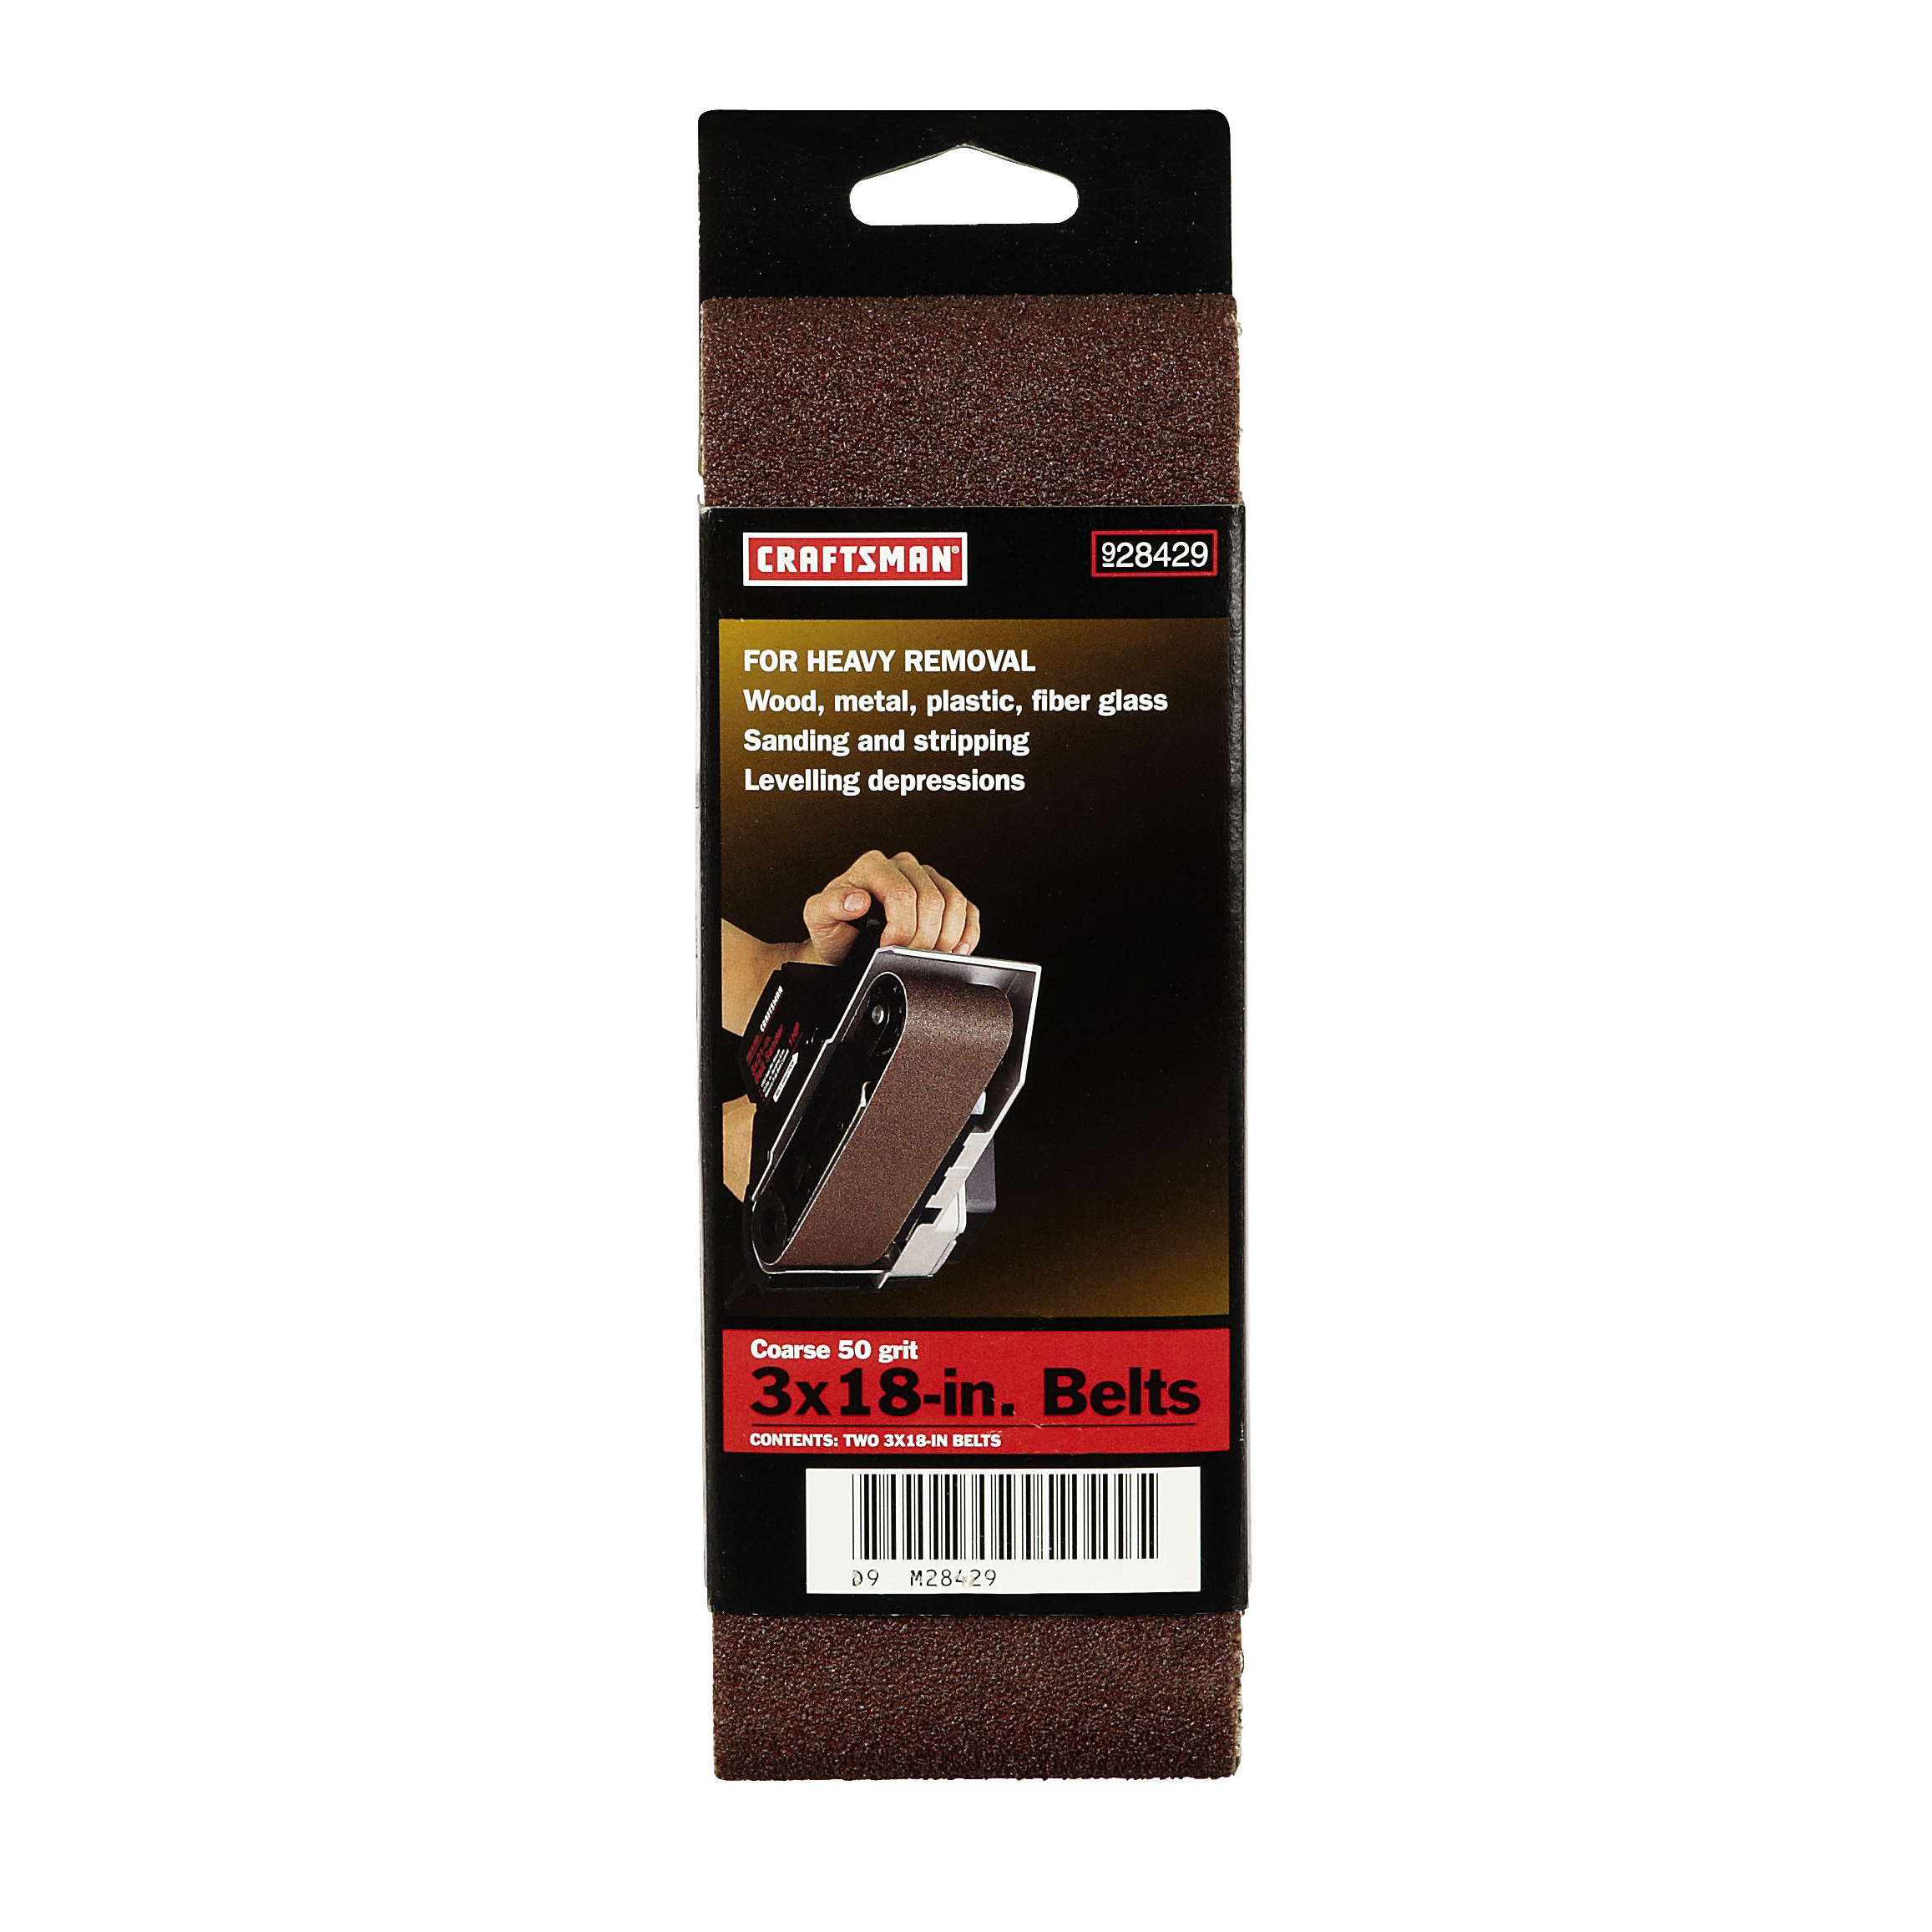 Craftsman 3 x 18 in. 50 Grit Belt, 2 pk.